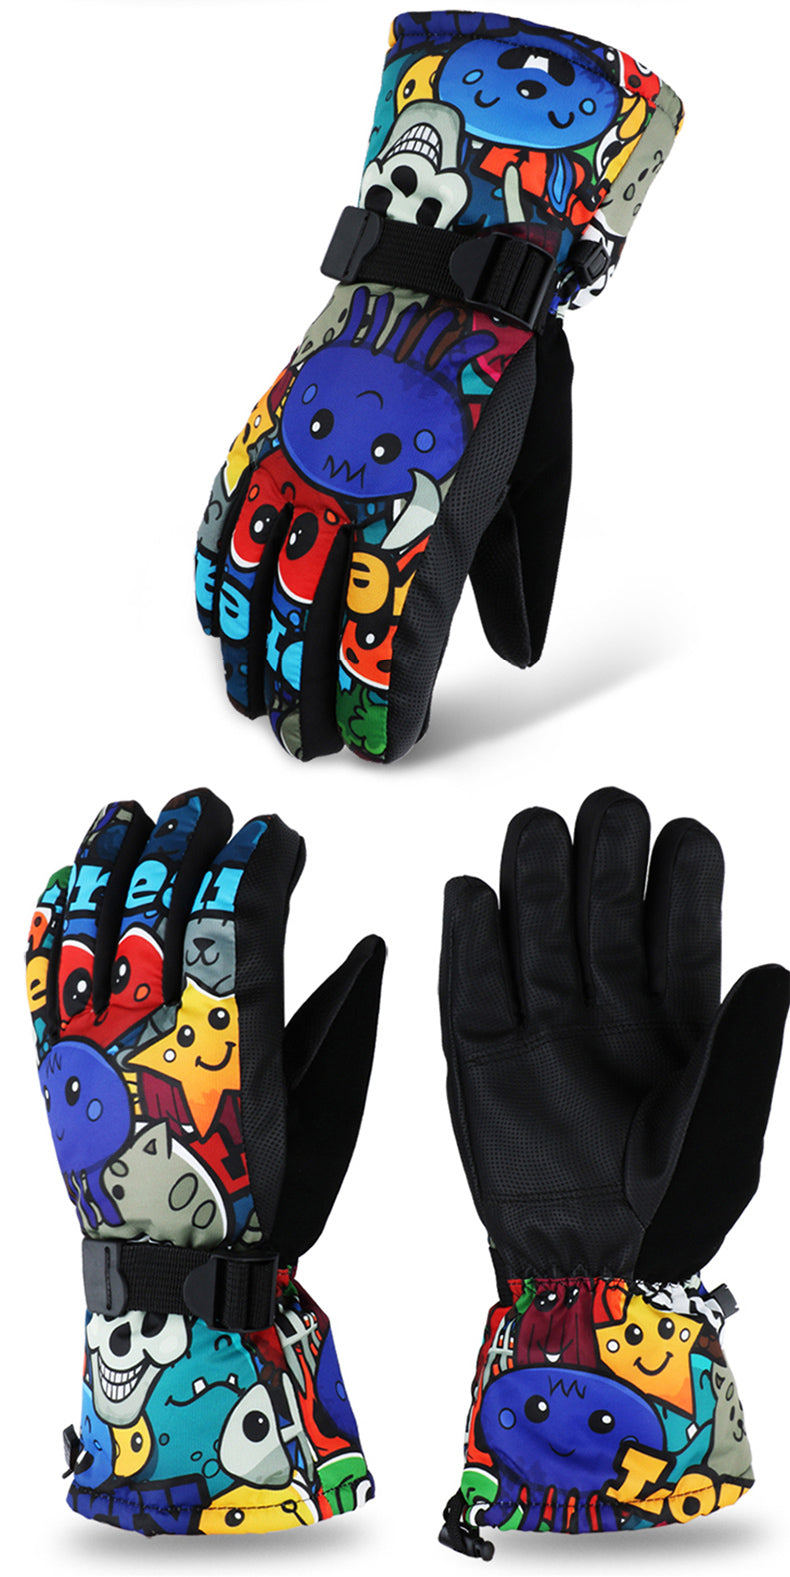 Women's Cute Cartoon Style Waterproof Snowboard Gloves